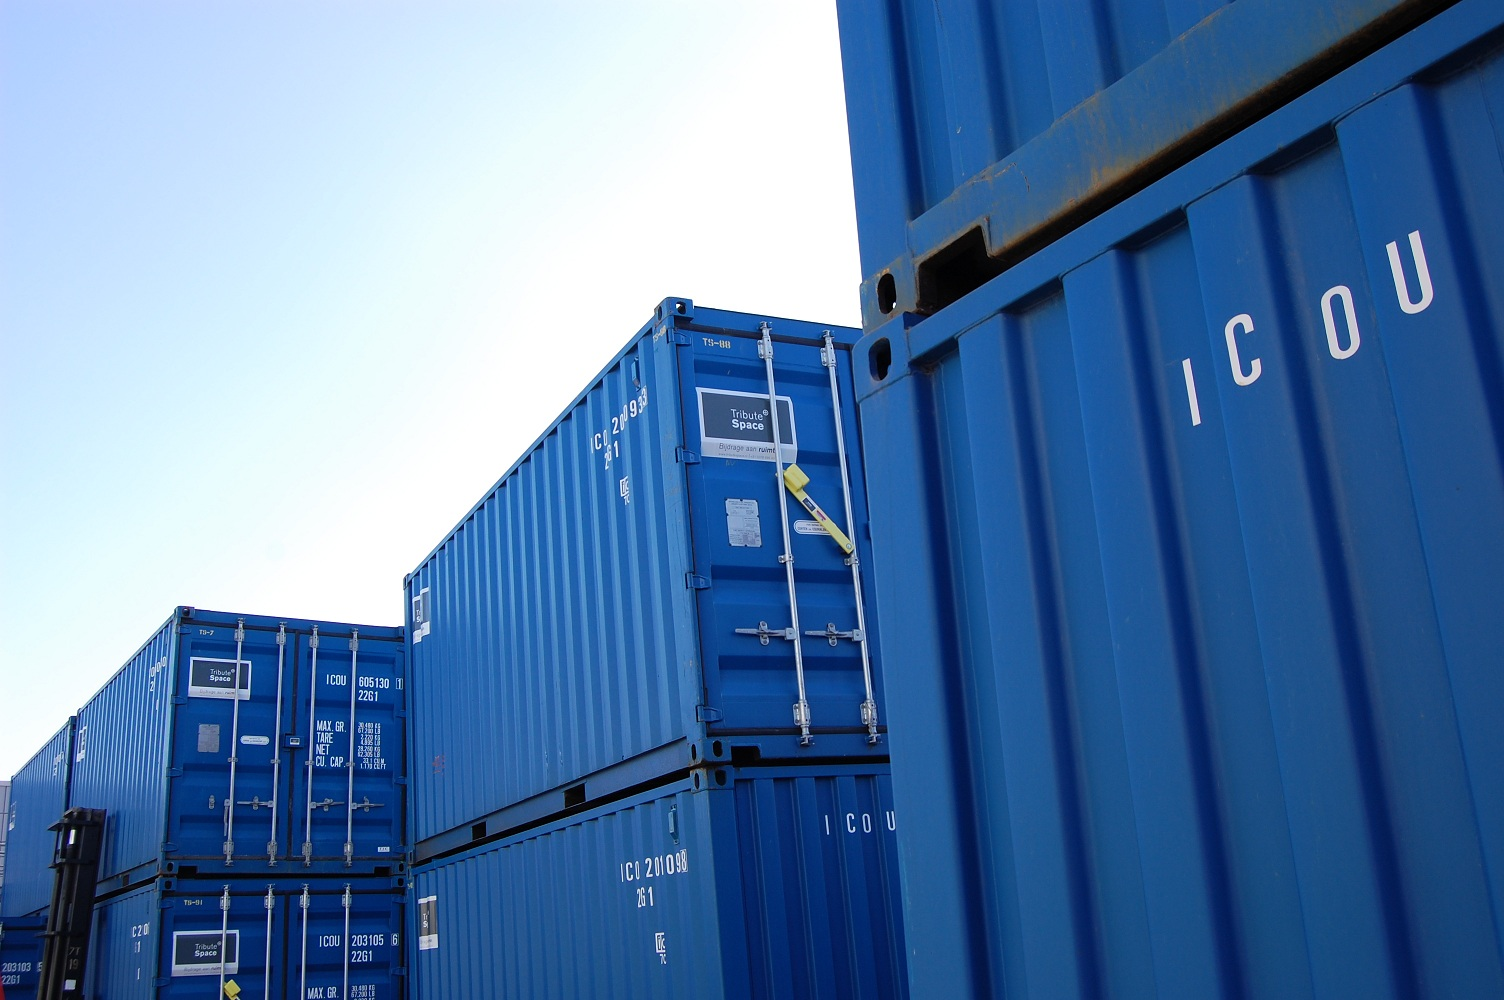 Containers and storage